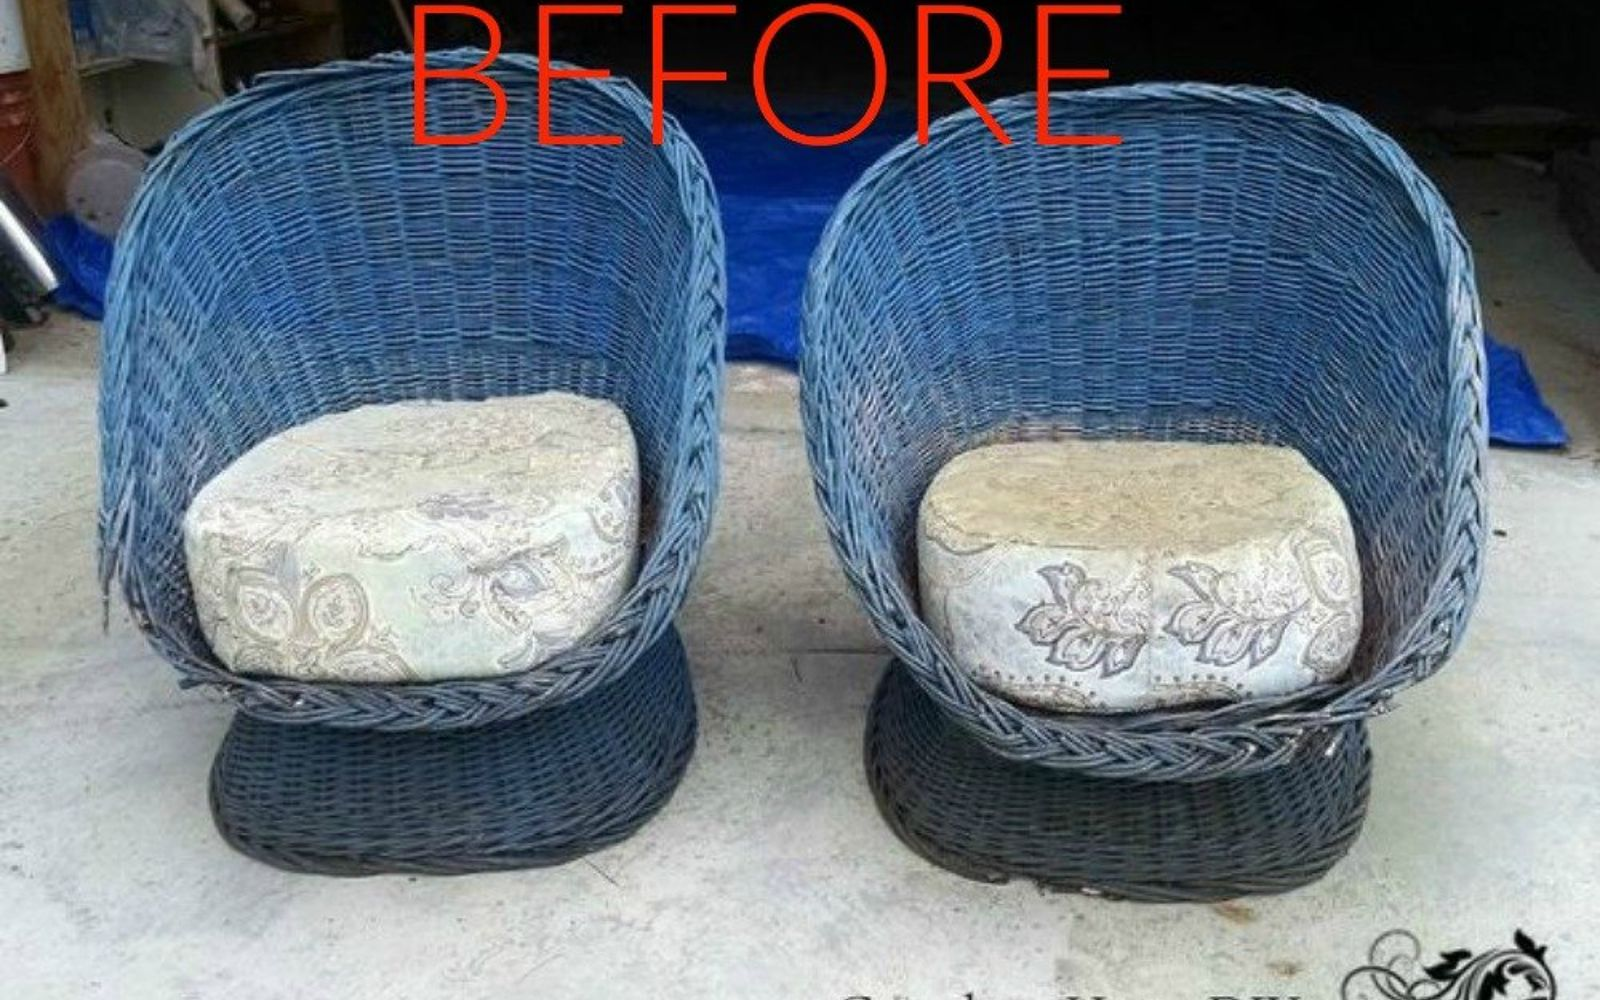 s make wicker trendy again with these brilliant ideas, painted furniture, Before Two deep seated wicker chairs